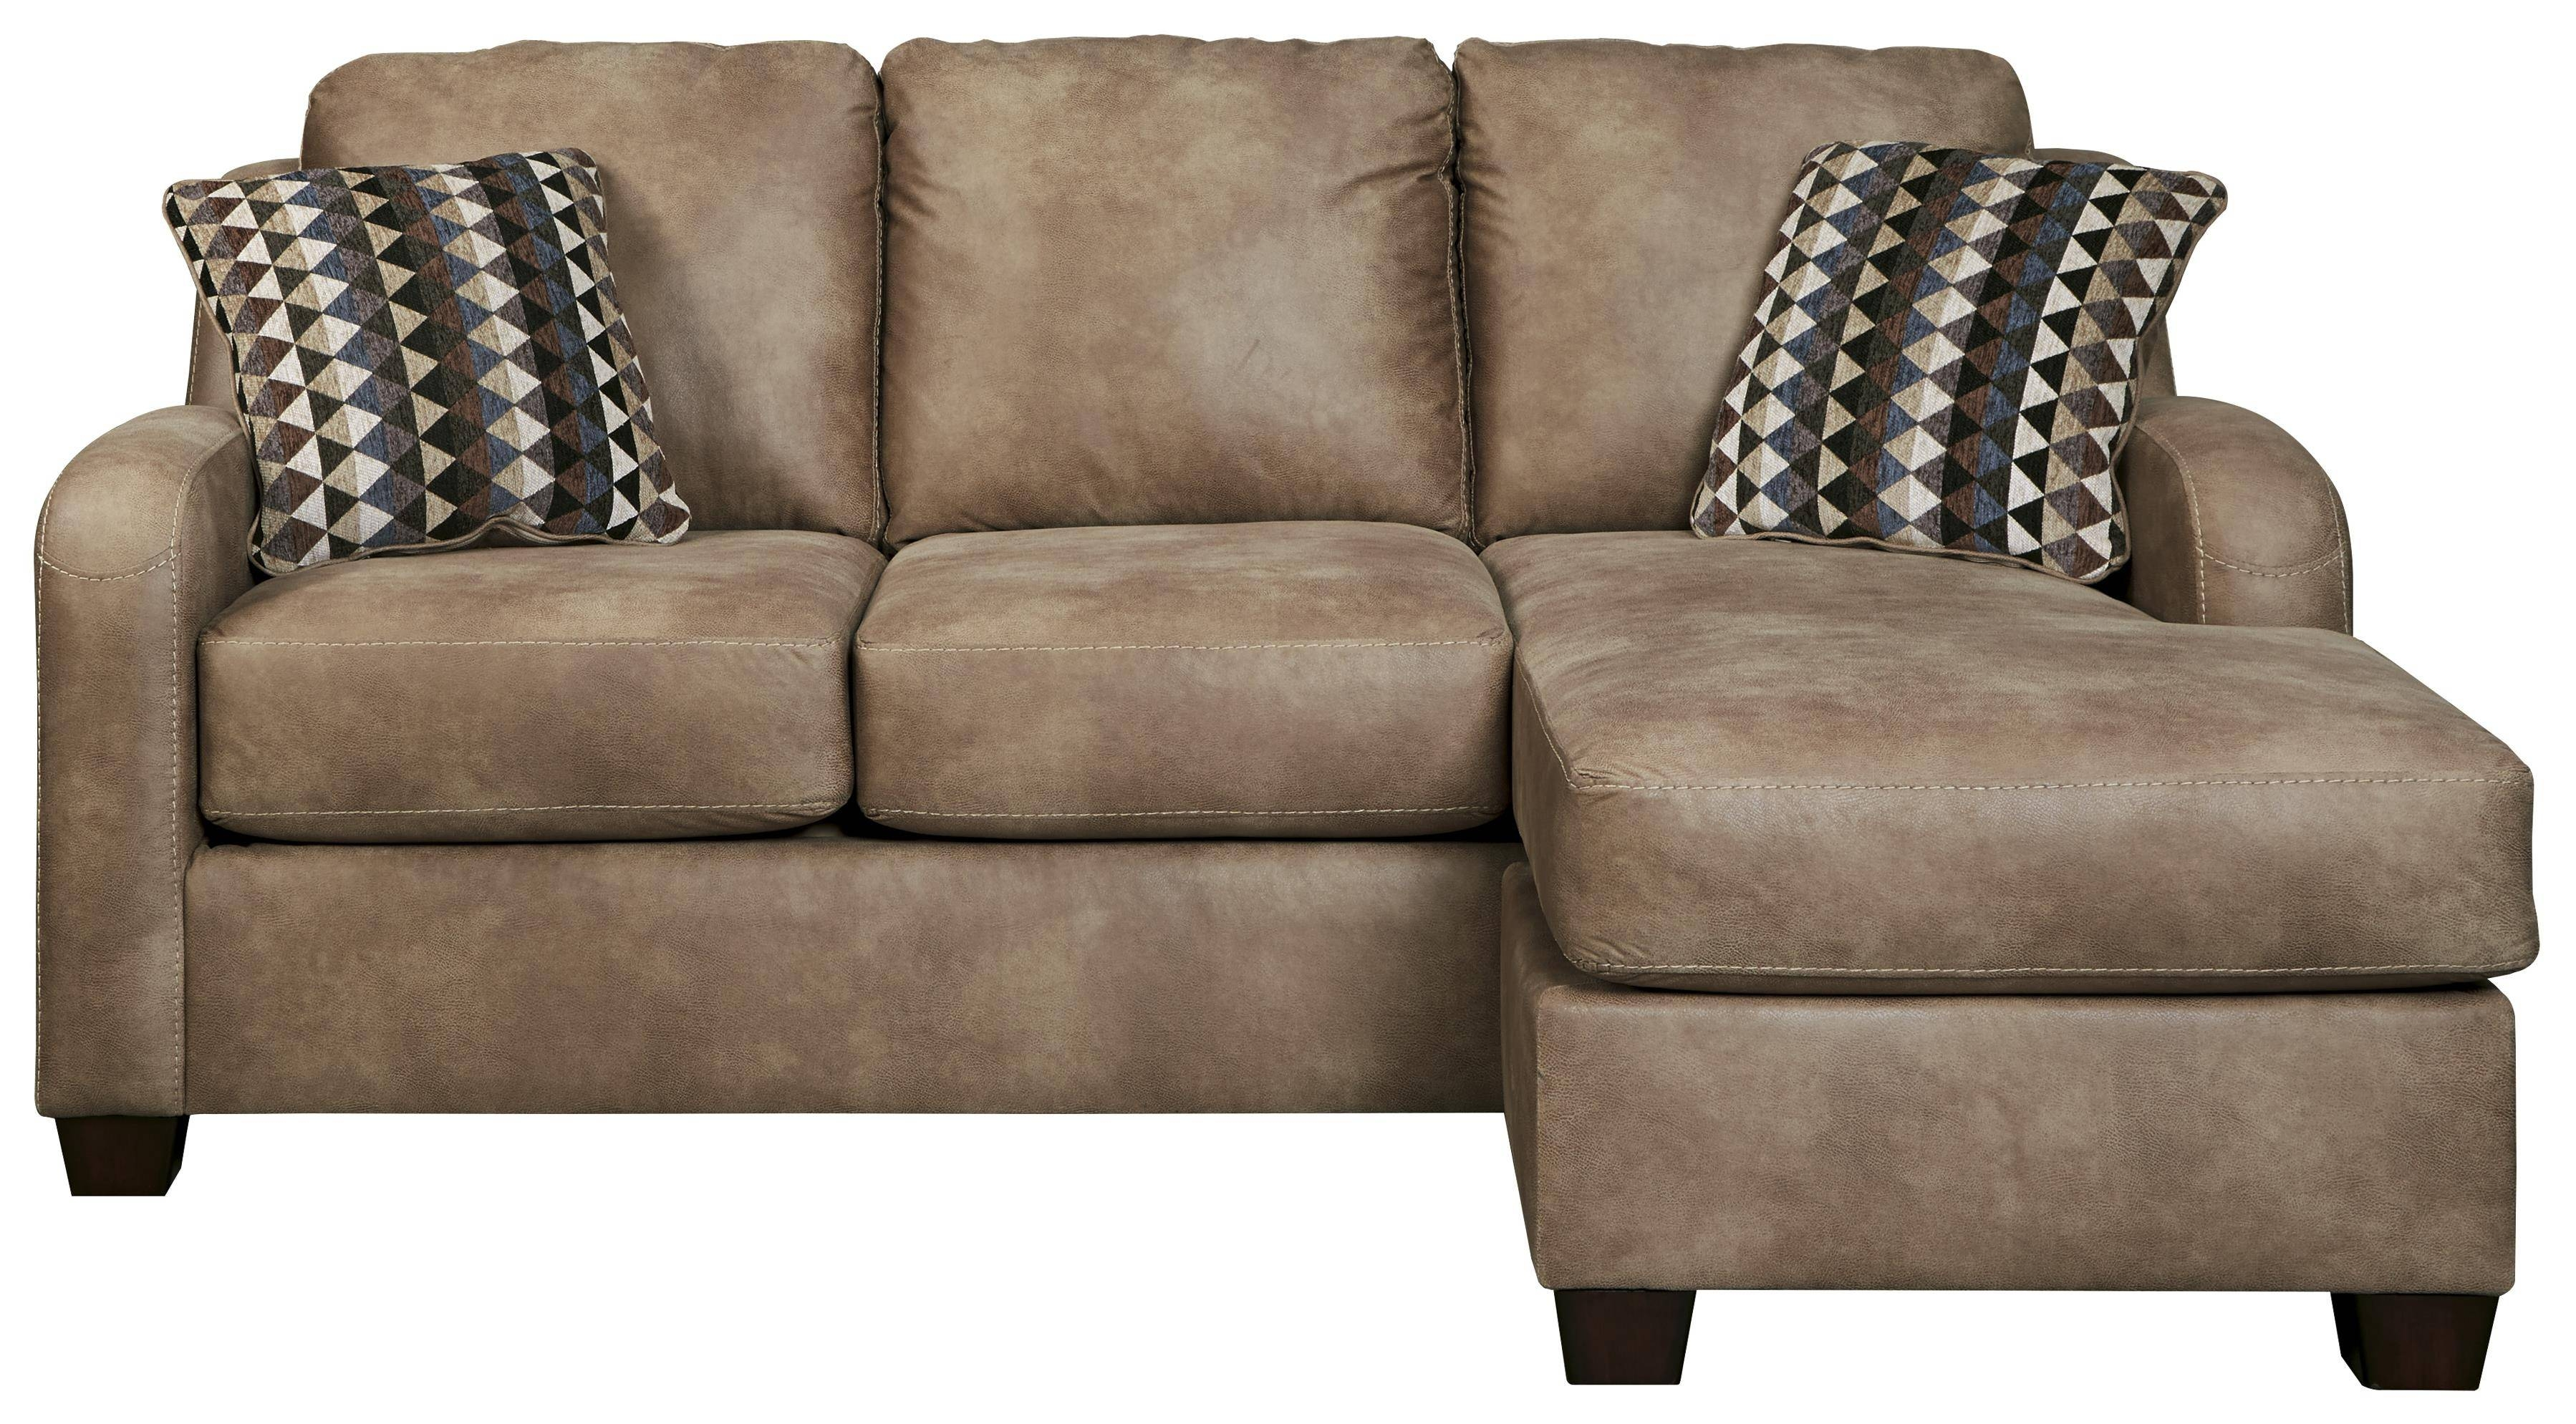 Contemporary Faux Leather Sofa Chaisebenchcraft | Wolf And with Benchcraft Leather Sofas (Image 7 of 15)